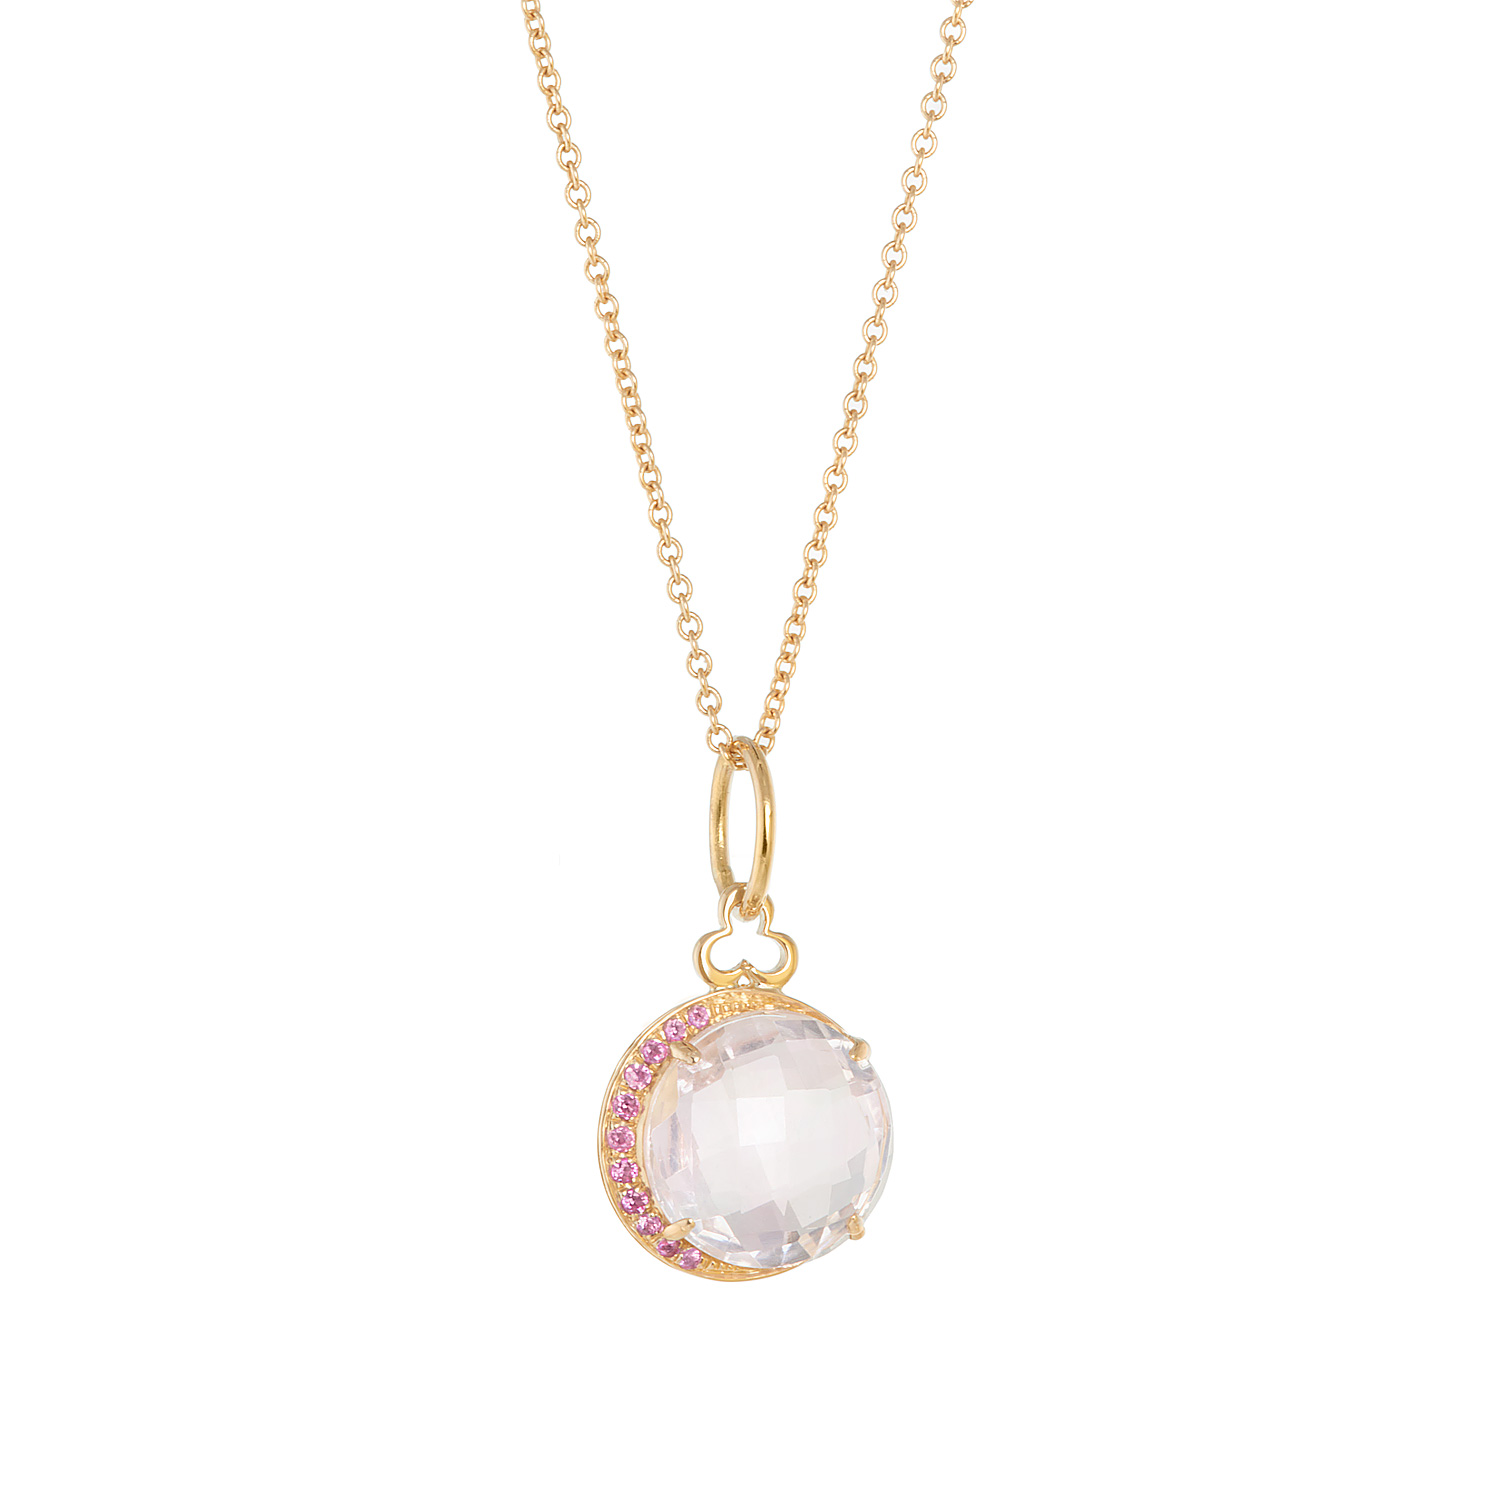 18K Yellow Gold, Rose Quartz